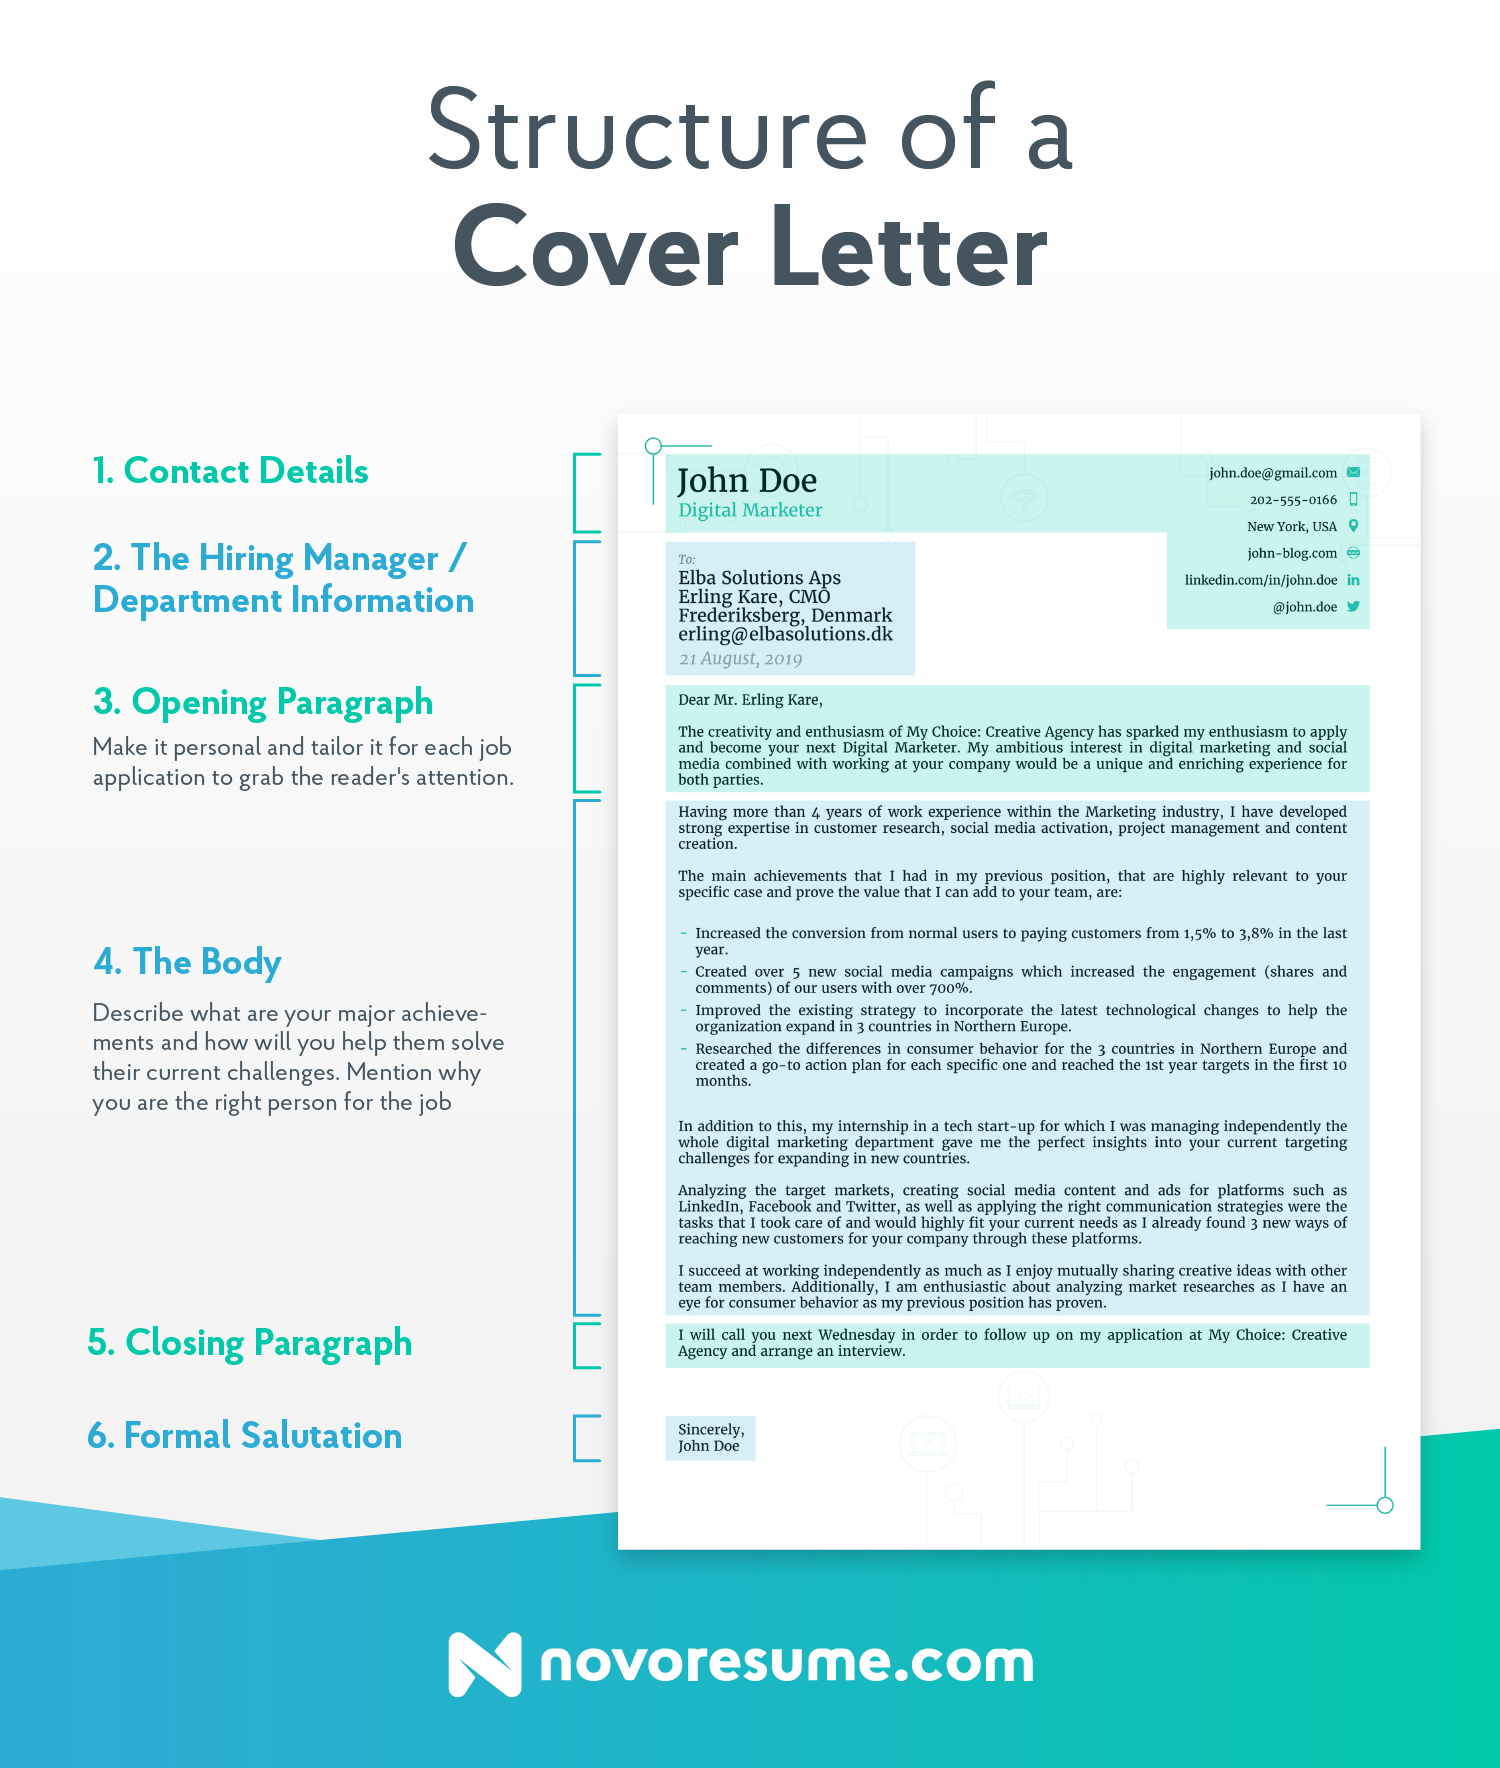 Tips To Writing A Cover Letter from d.novoresume.com